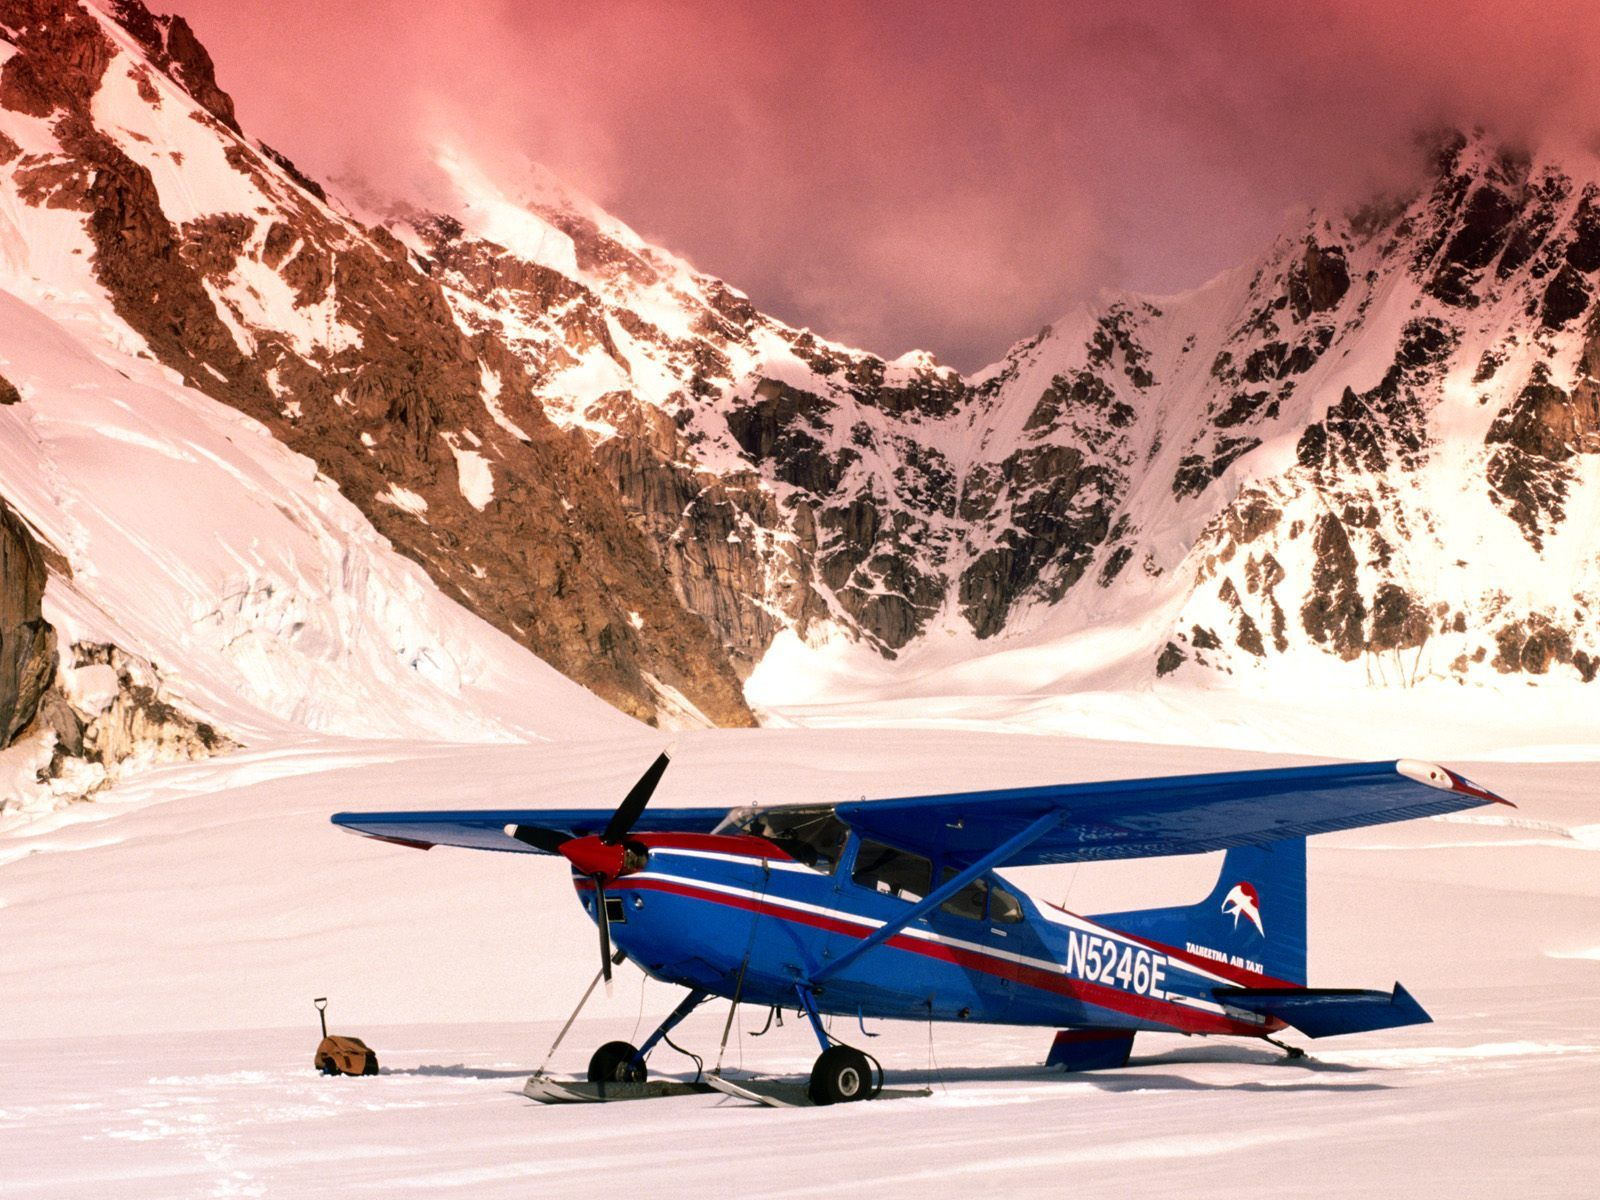 planes on skis | Cessna 185 Ski Plane, Mount McKinley